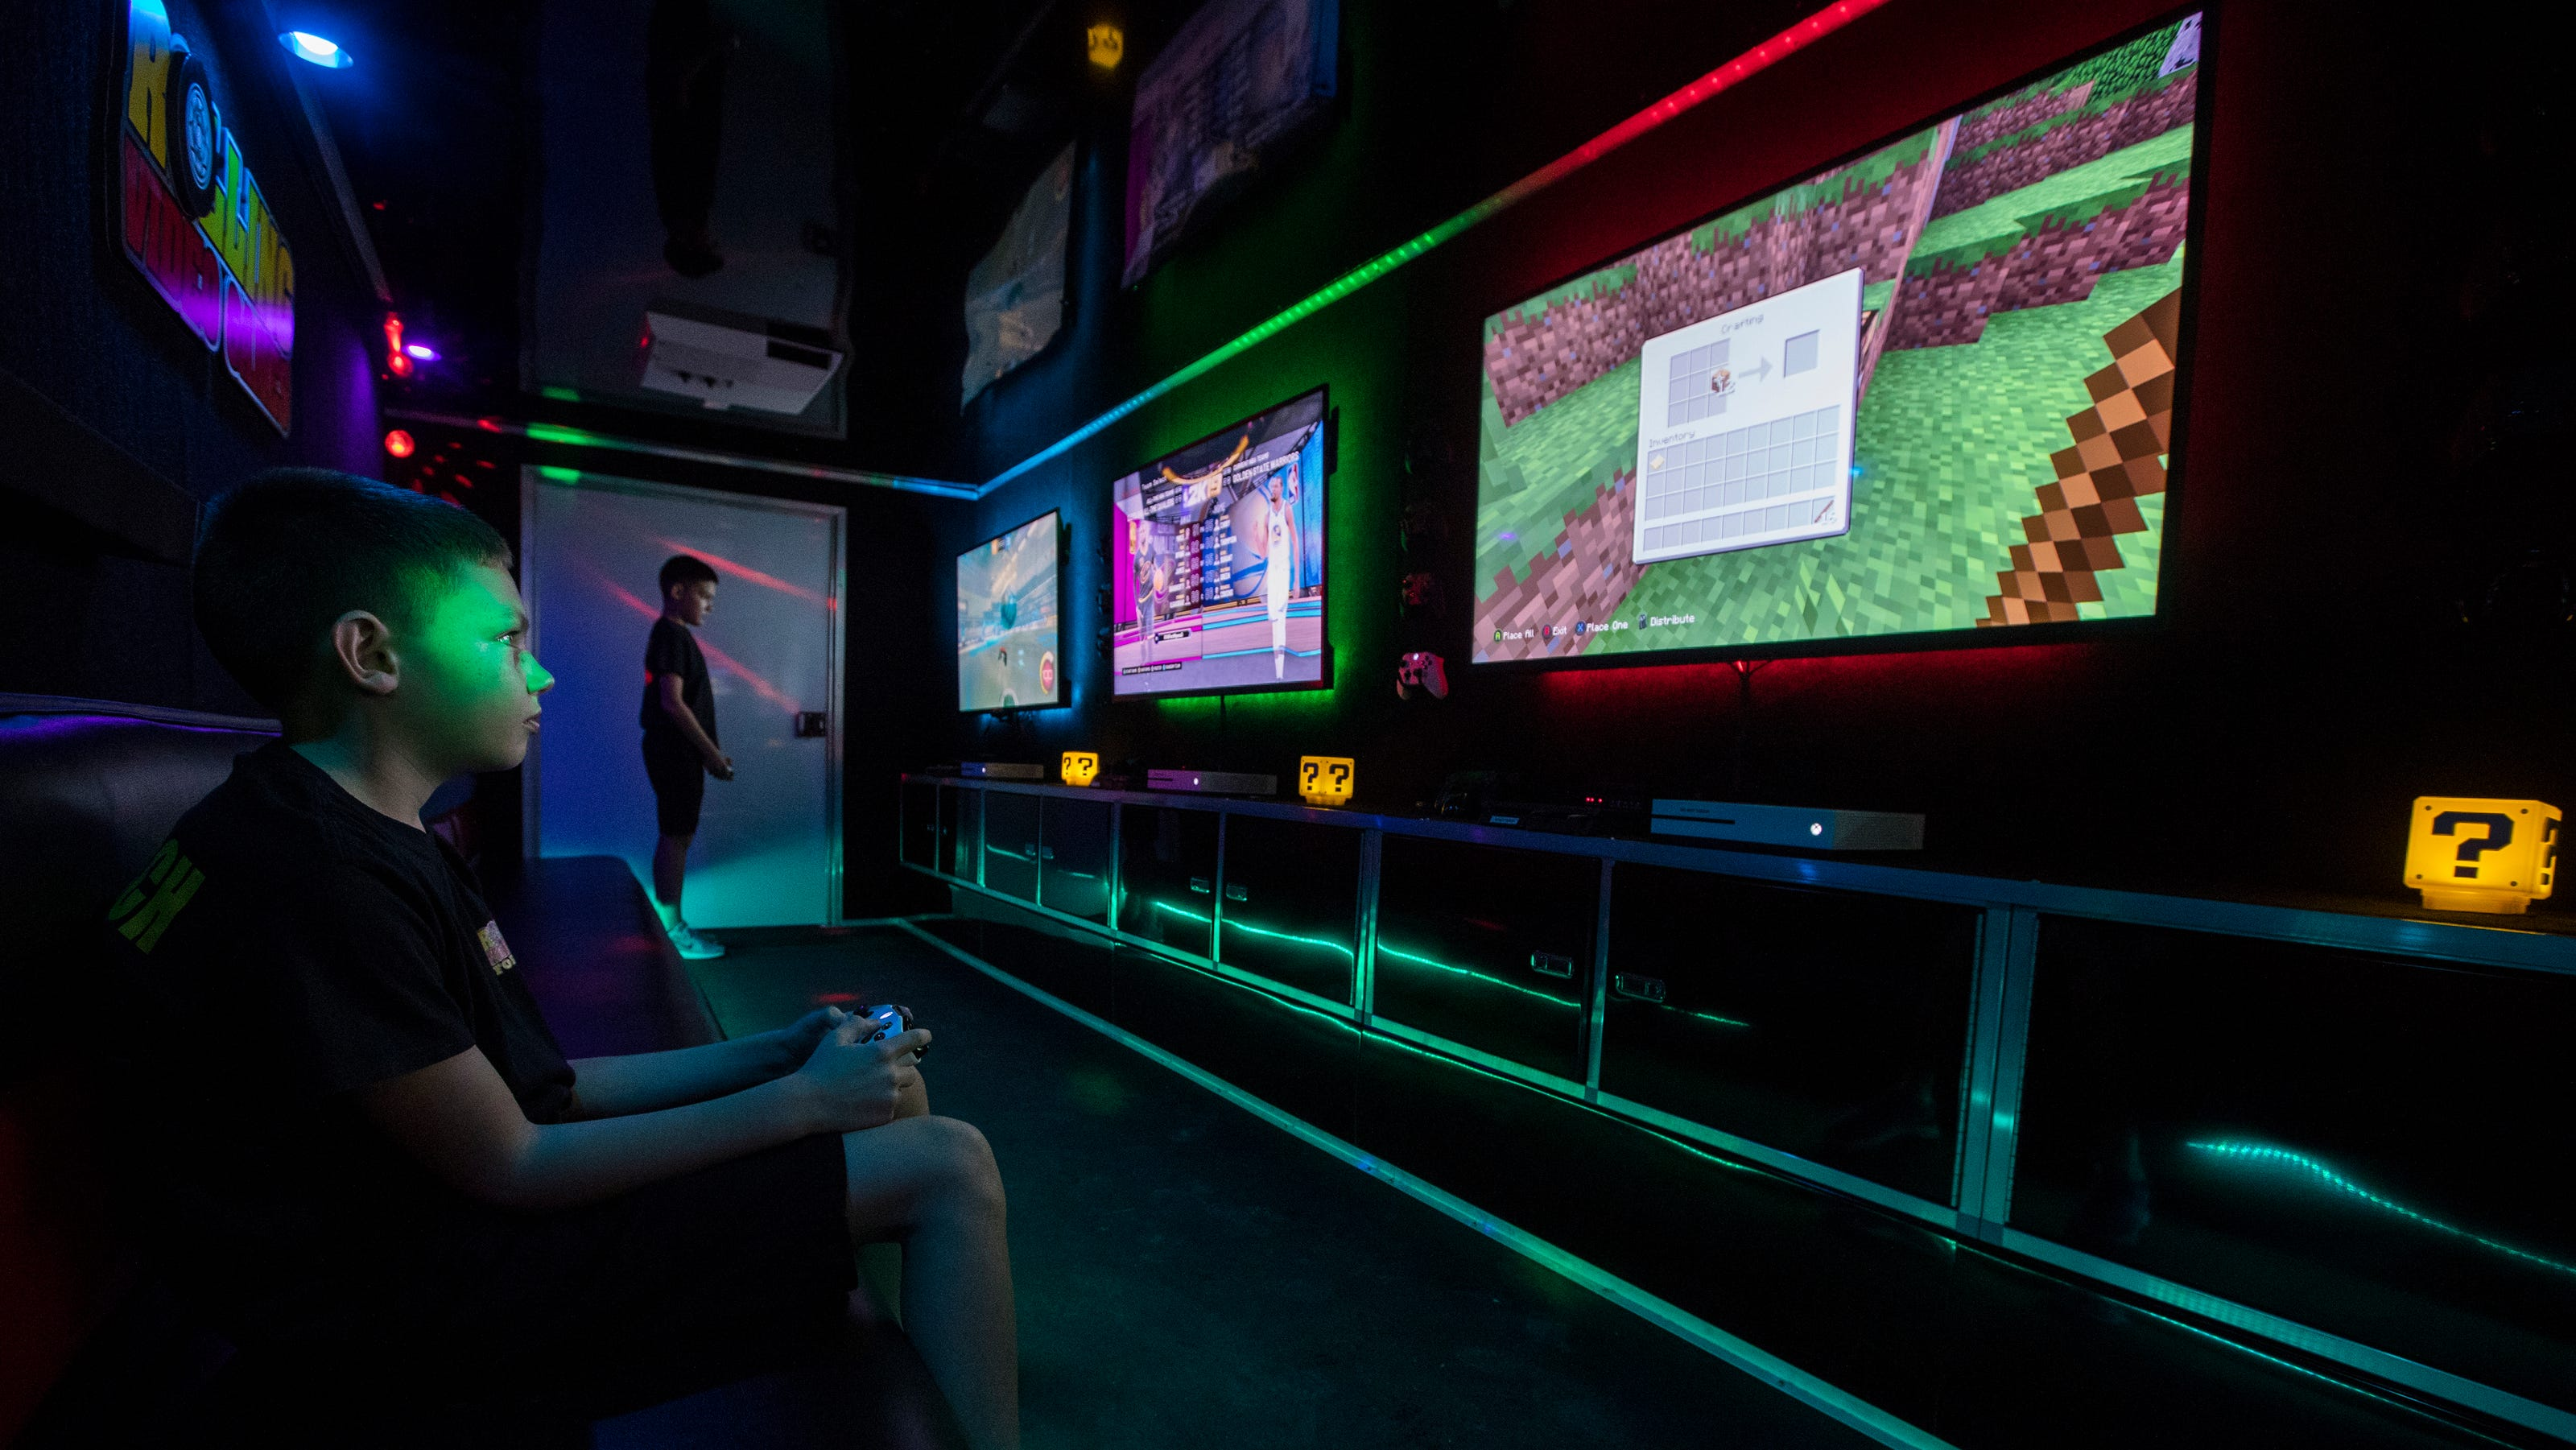 Rolling Video Games Fort Myers Puts Mobile Spin On Console Video Games Youtube's official channel helps you discover what's new & trending globally. rolling video games fort myers puts